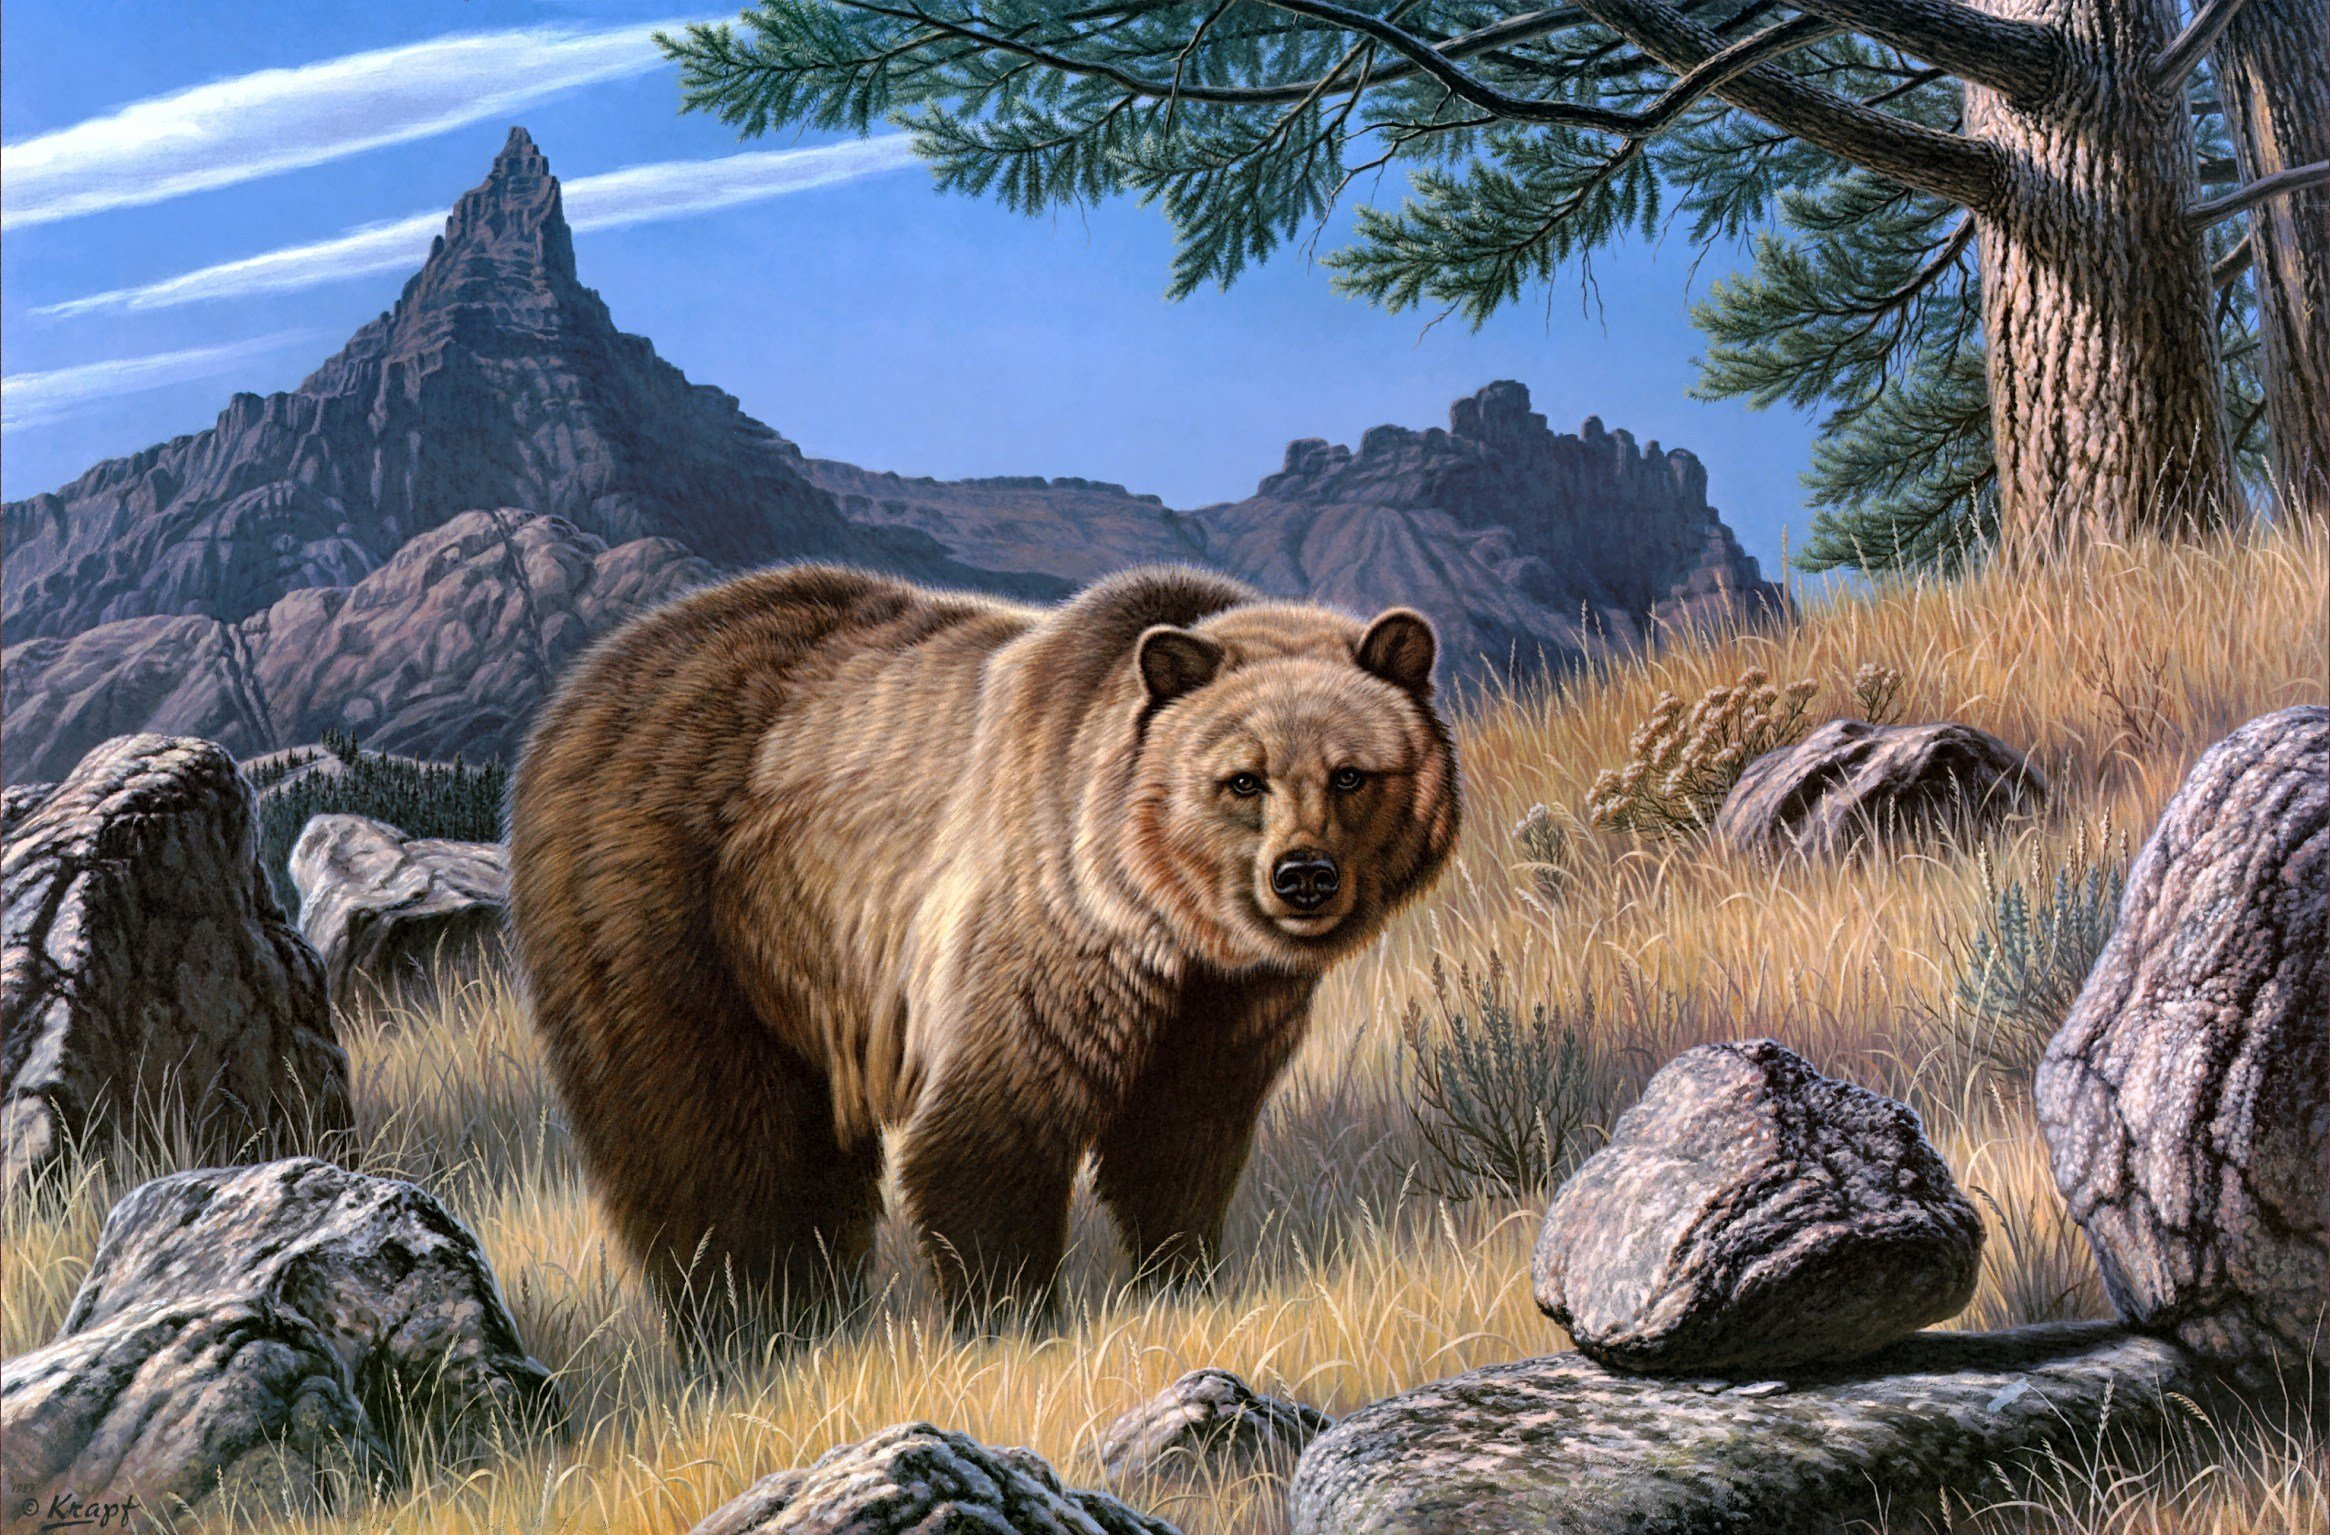 Bears Brown Painting Art Animals bear wallpaper | 2330x1535 | 348750 ...: www.wallpaperup.com/348750/Bears_Brown_Painting_Art_Animals_bear.html